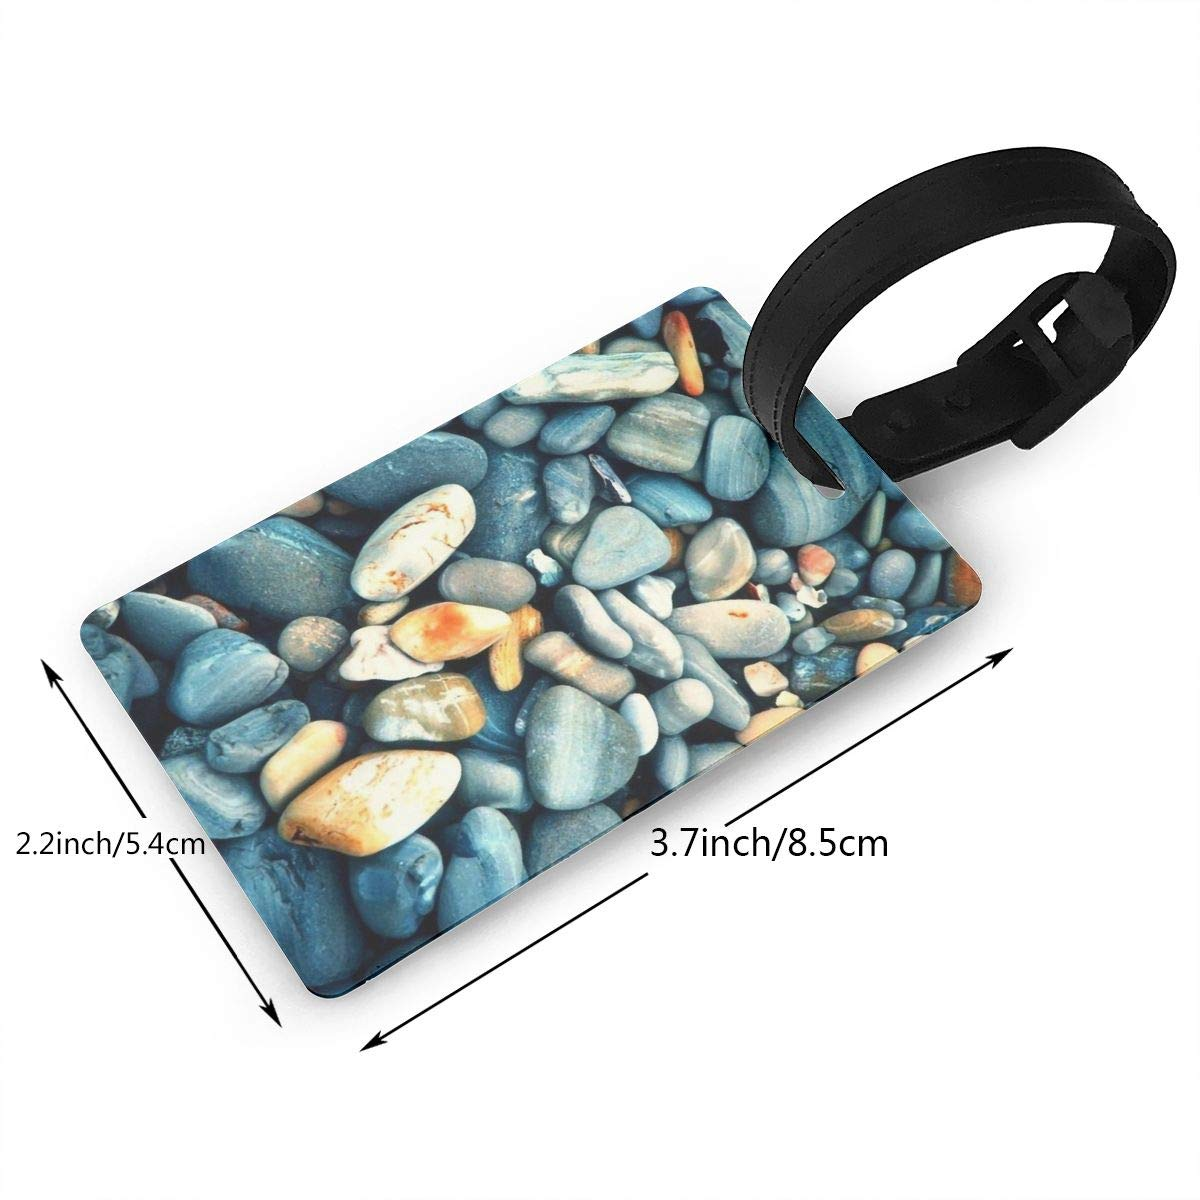 Cobblestone Baggage Tag For Travel Bag Suitcase Accessories 2 Pack Luggage Tags